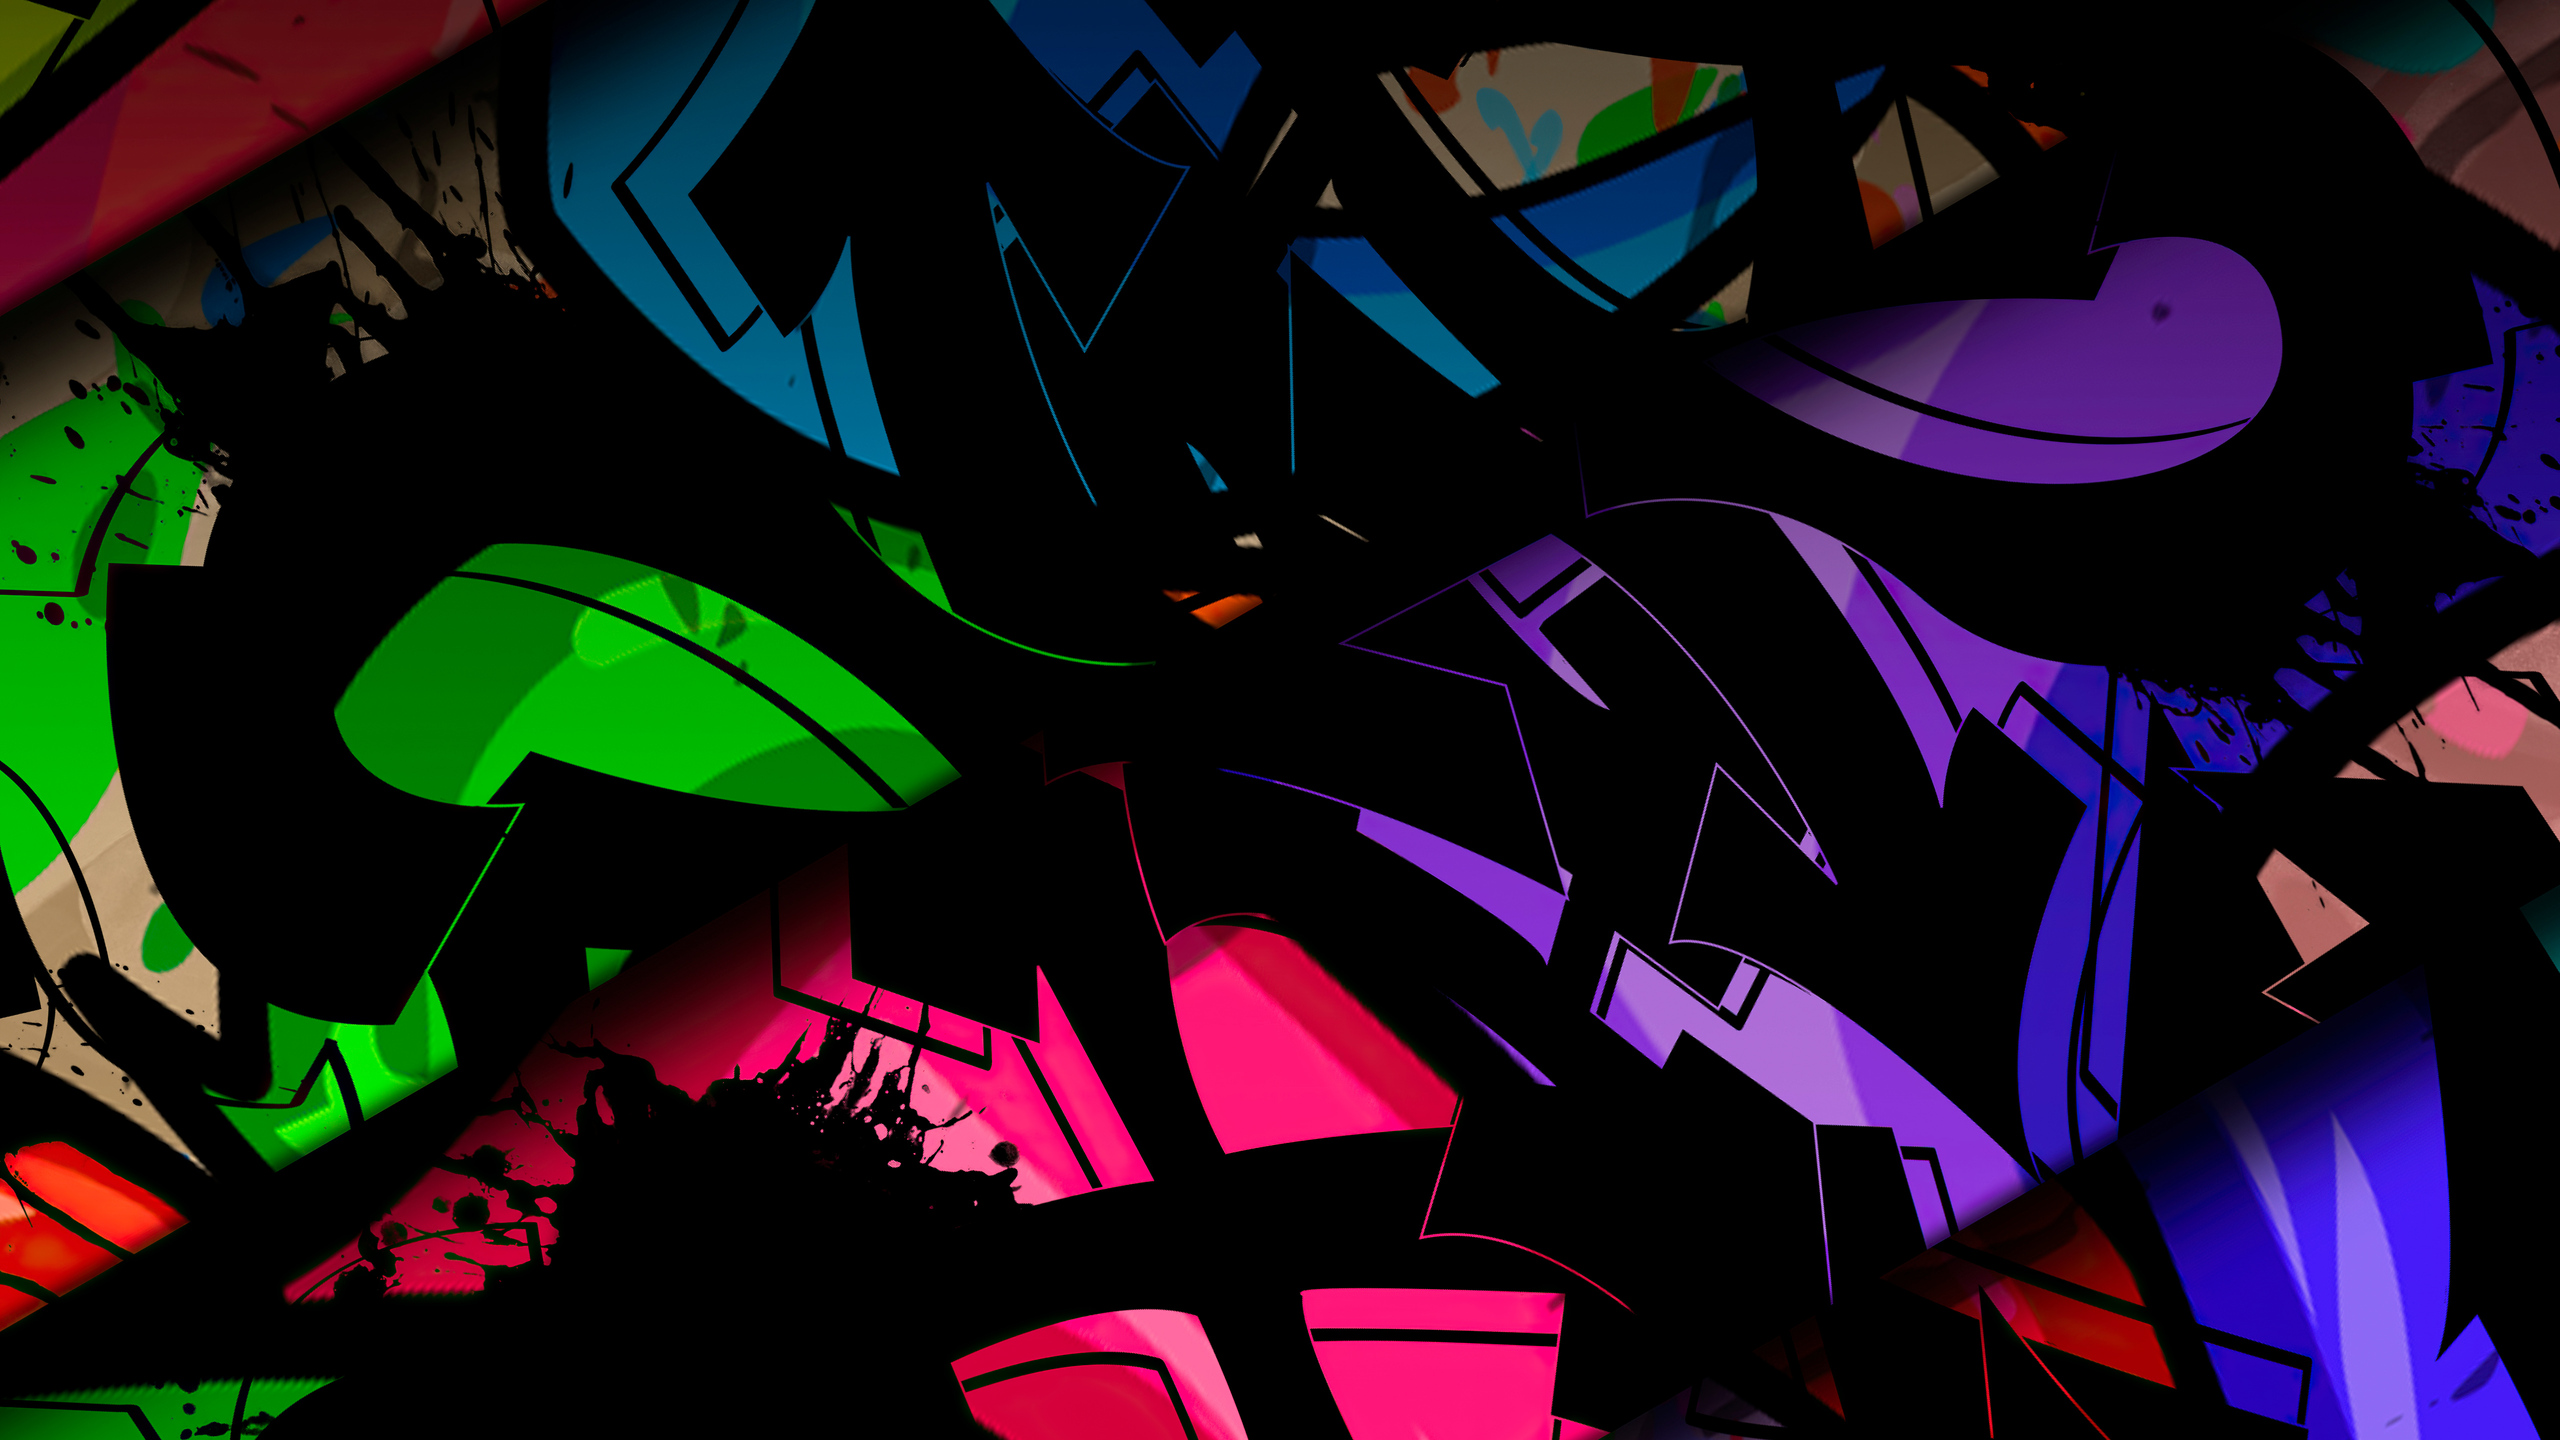 glass-broken-colors-abstract-5k-il.jpg